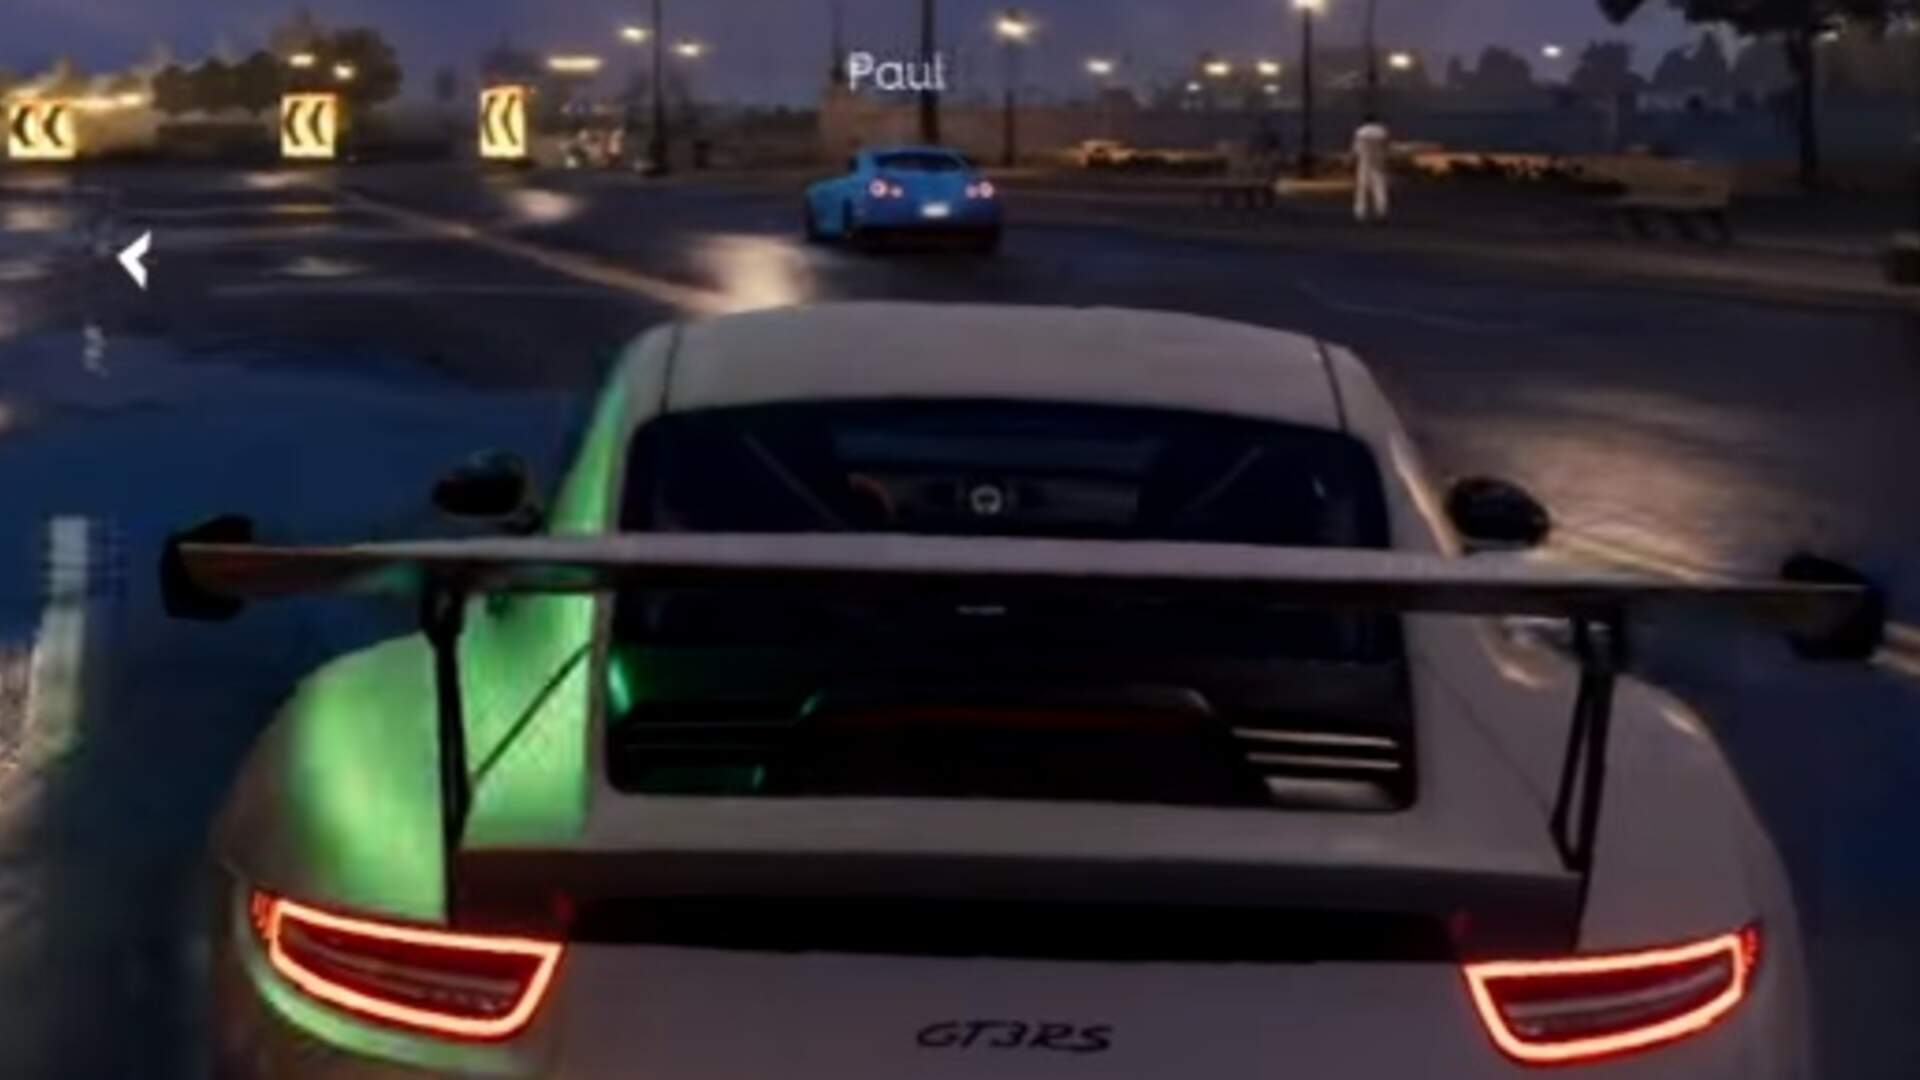 The Crew 2 - Release Date, Gameplay, Cars, Bikes, Planes, Boats, City - Everything We Know